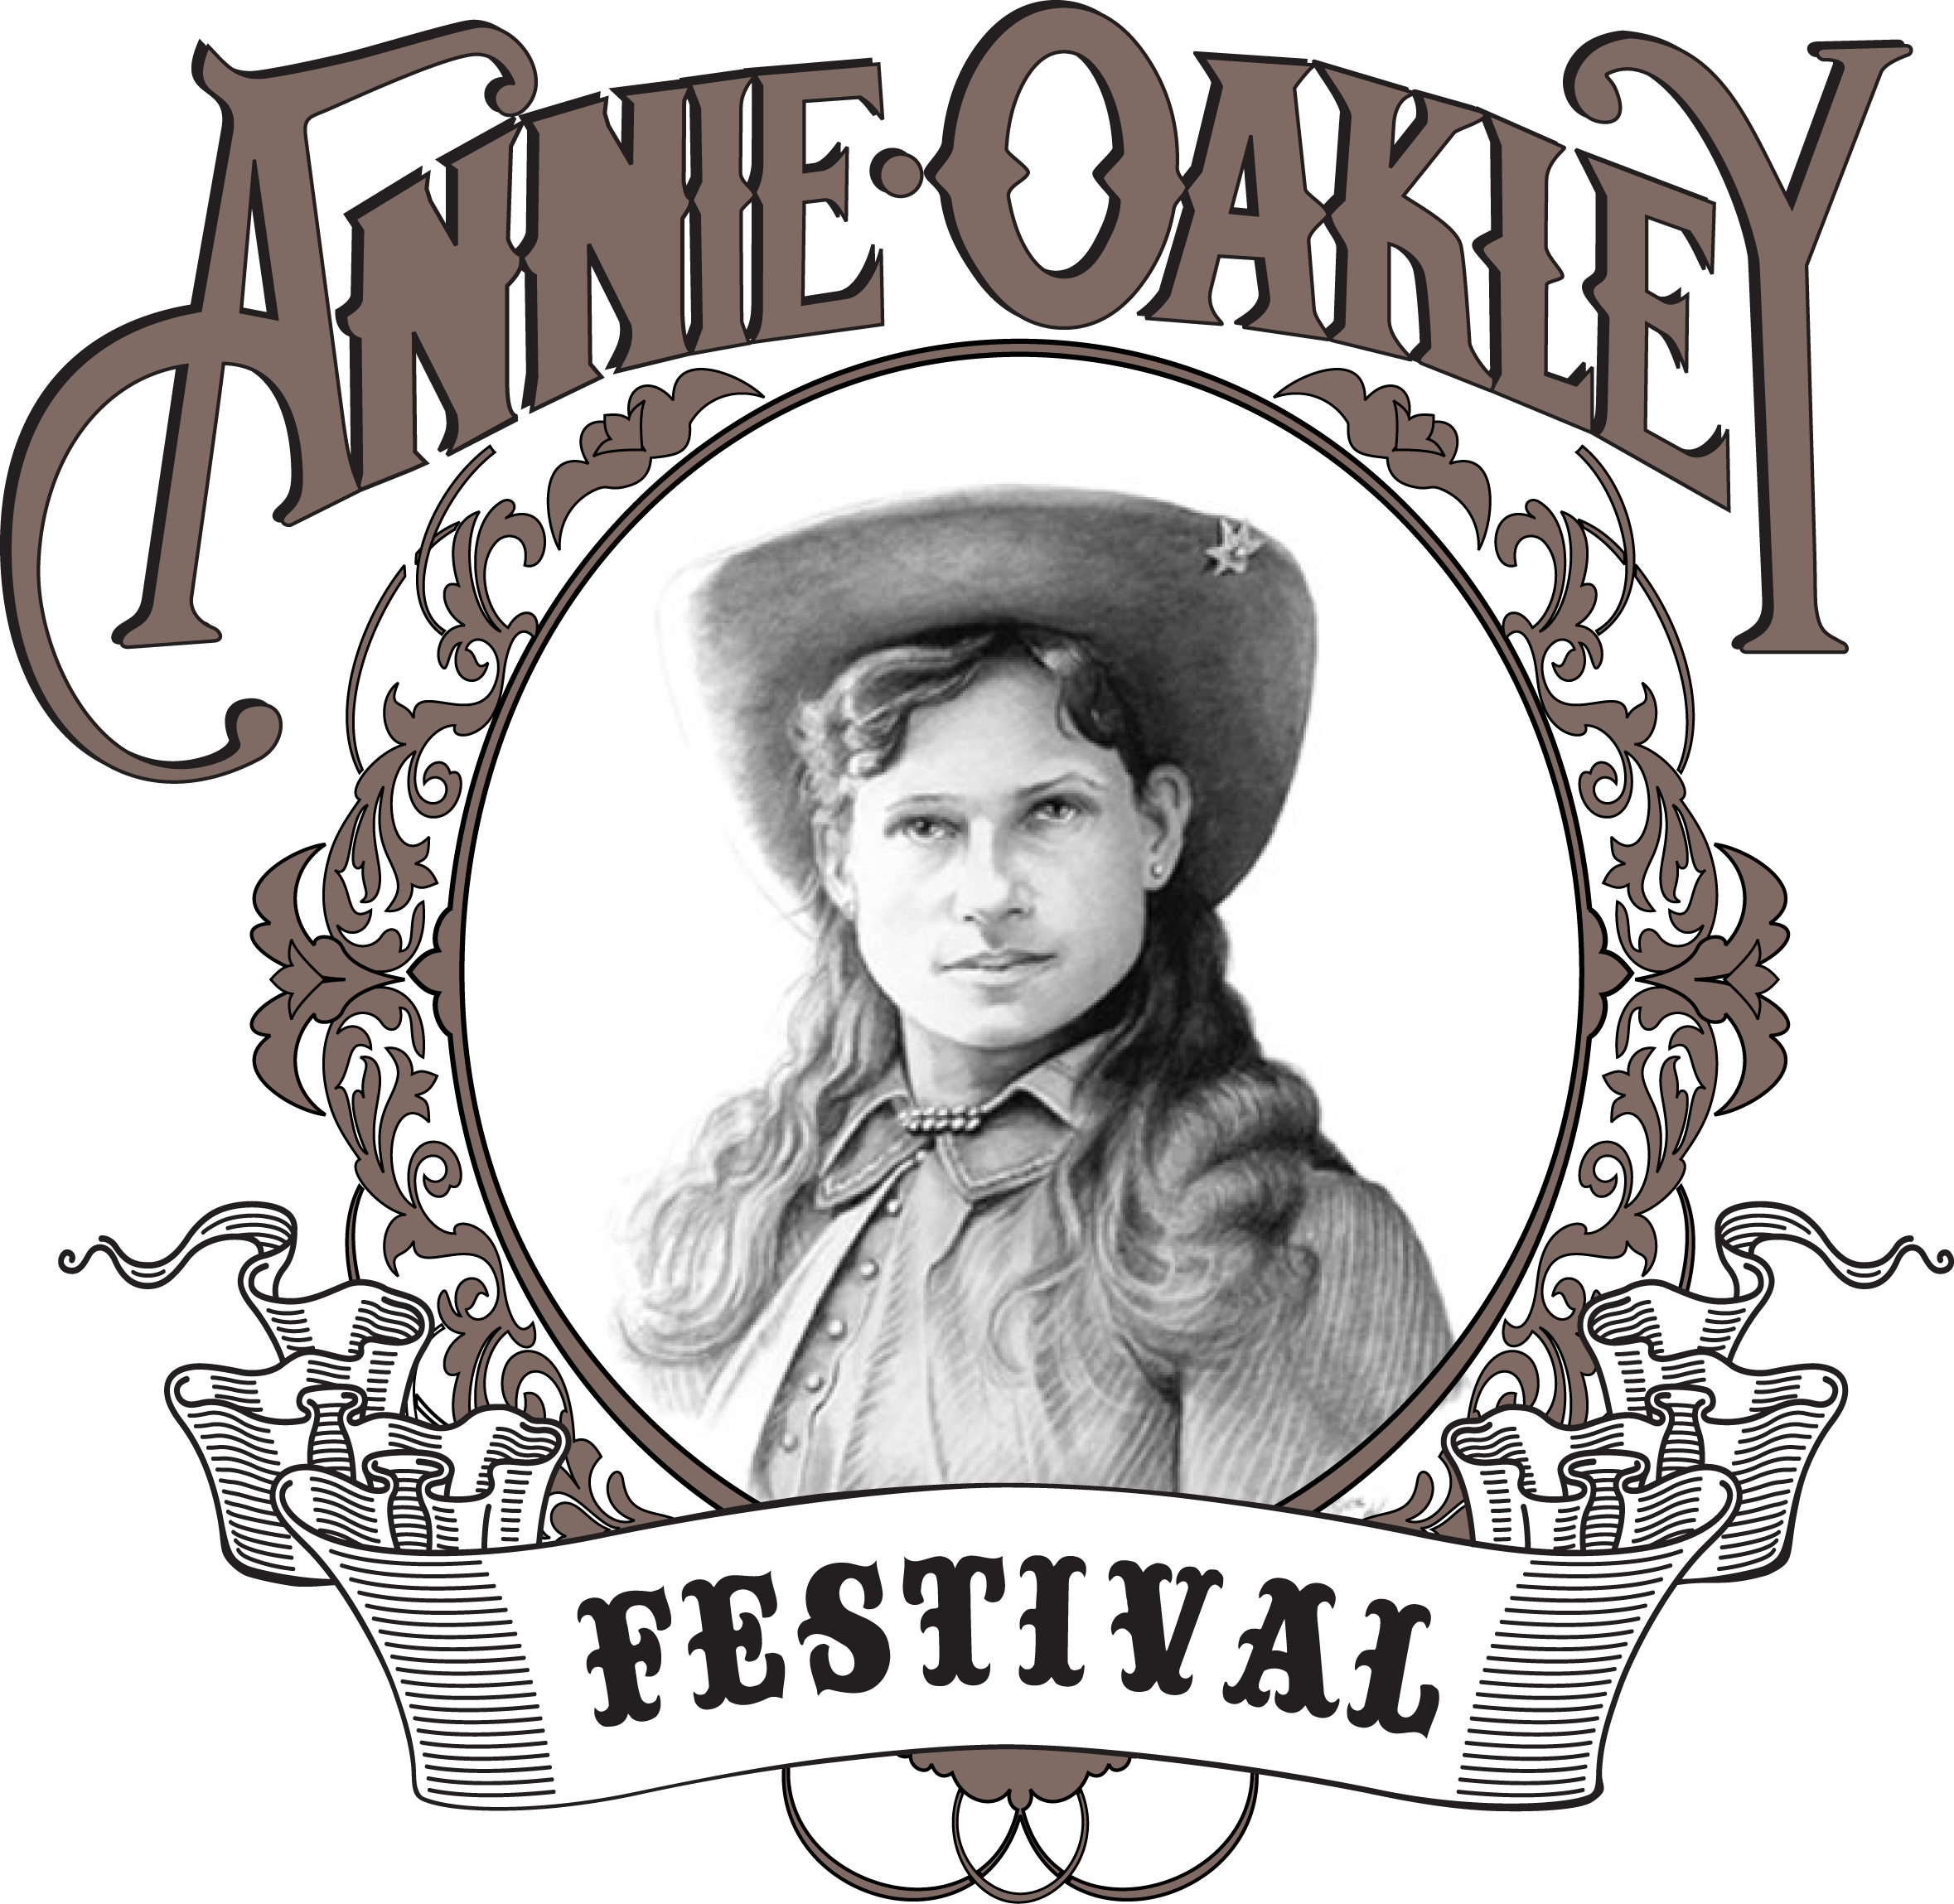 Annie oakly clipart banner free stock Annie oakley clipart - Clip Art Library banner free stock